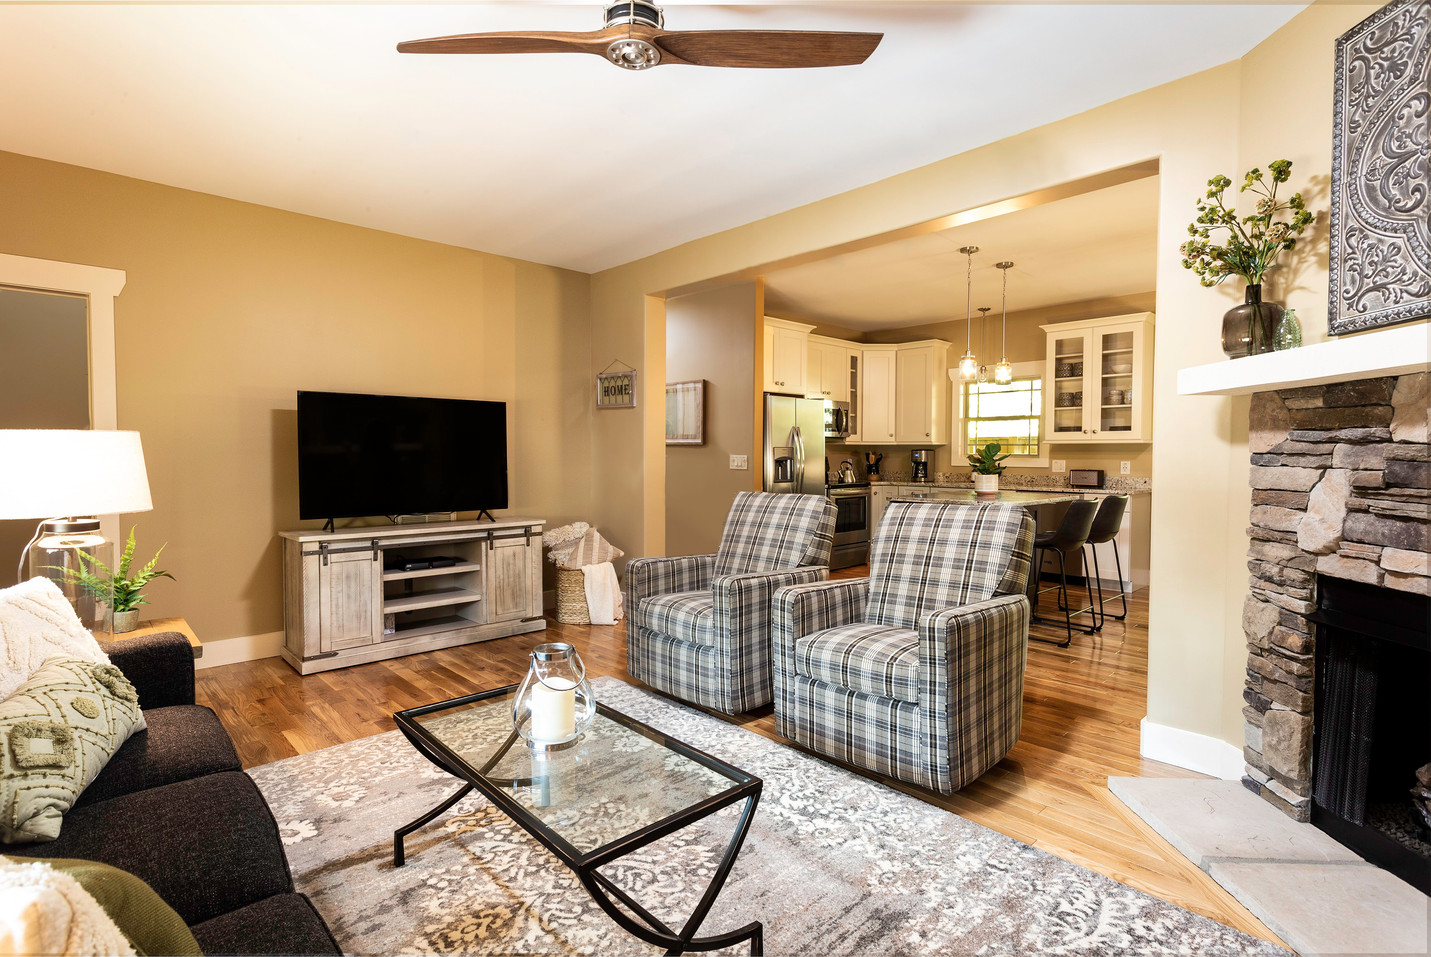 Large TV and luxurious ceiling fan